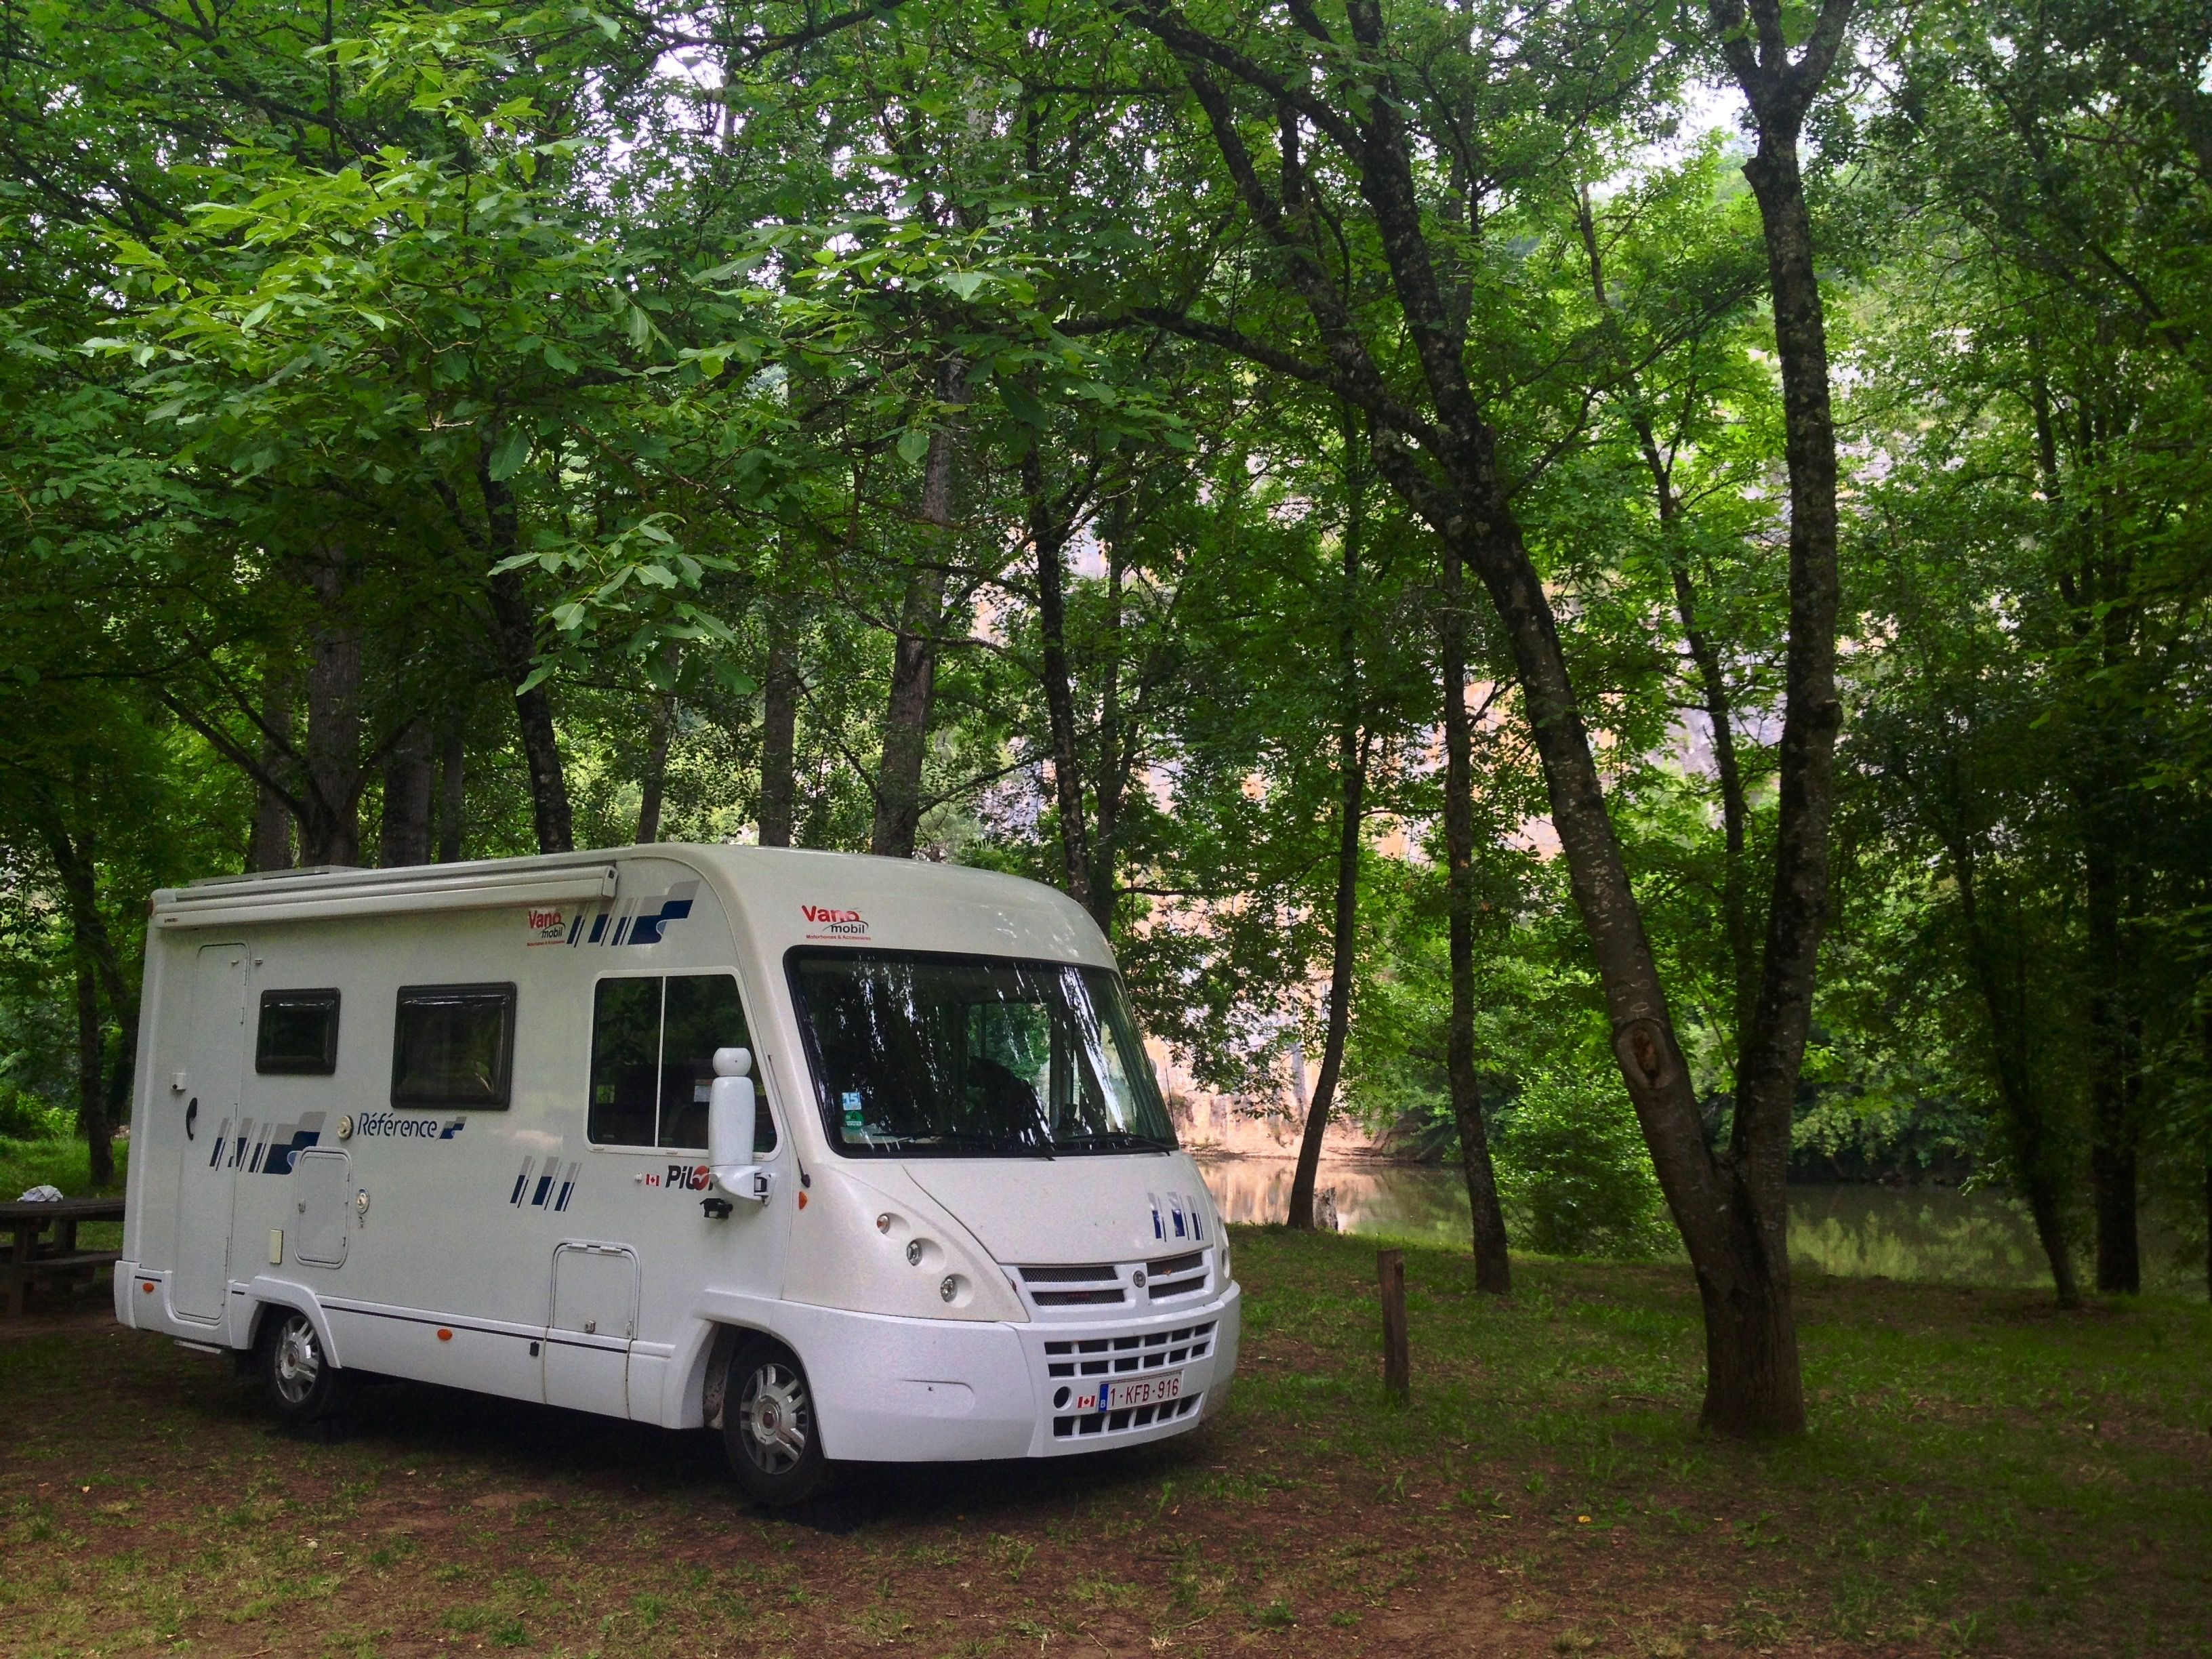 Reflections on motorhome living after 90 days on the road. Day 59: Parked under the trees in Bouziès, France.